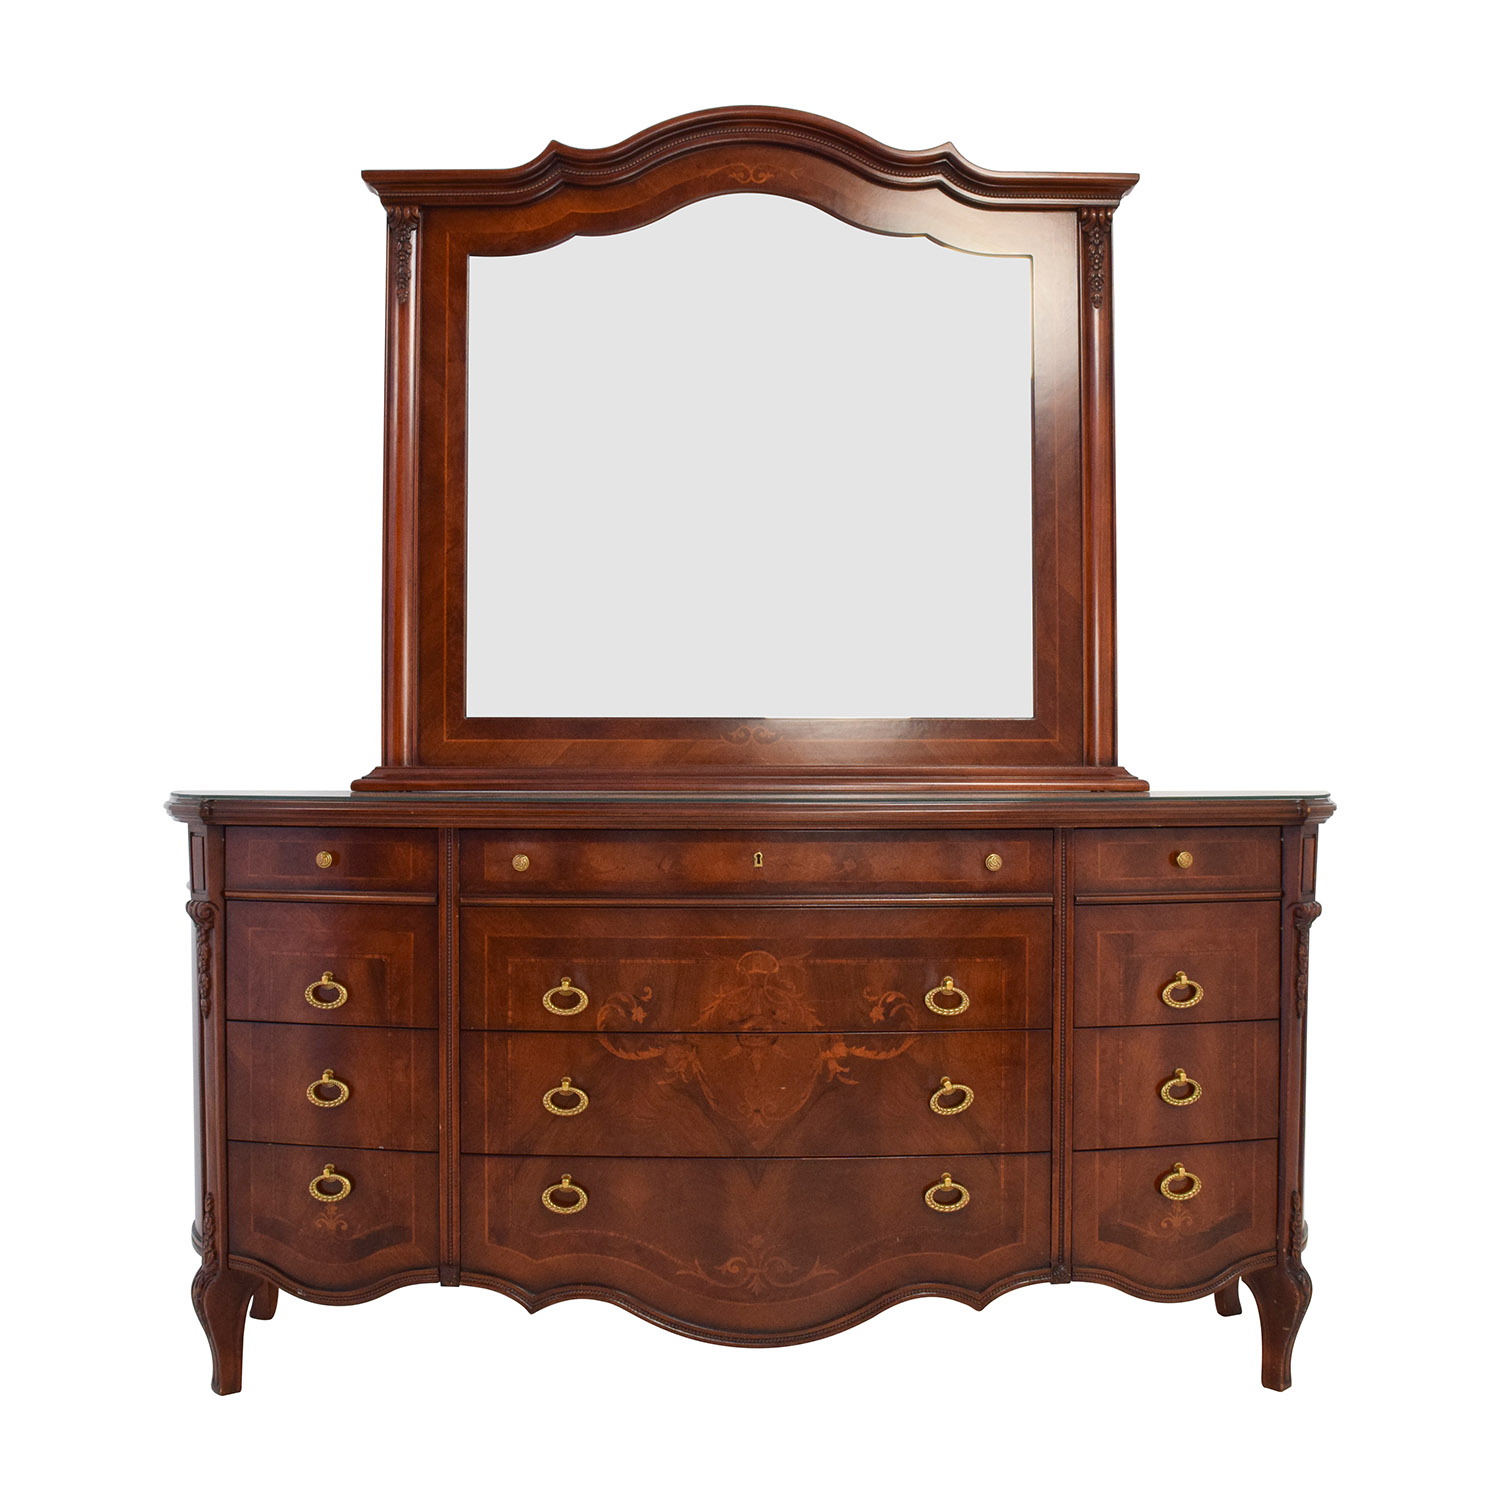 buy Antique European Wood Dresser with Mirror